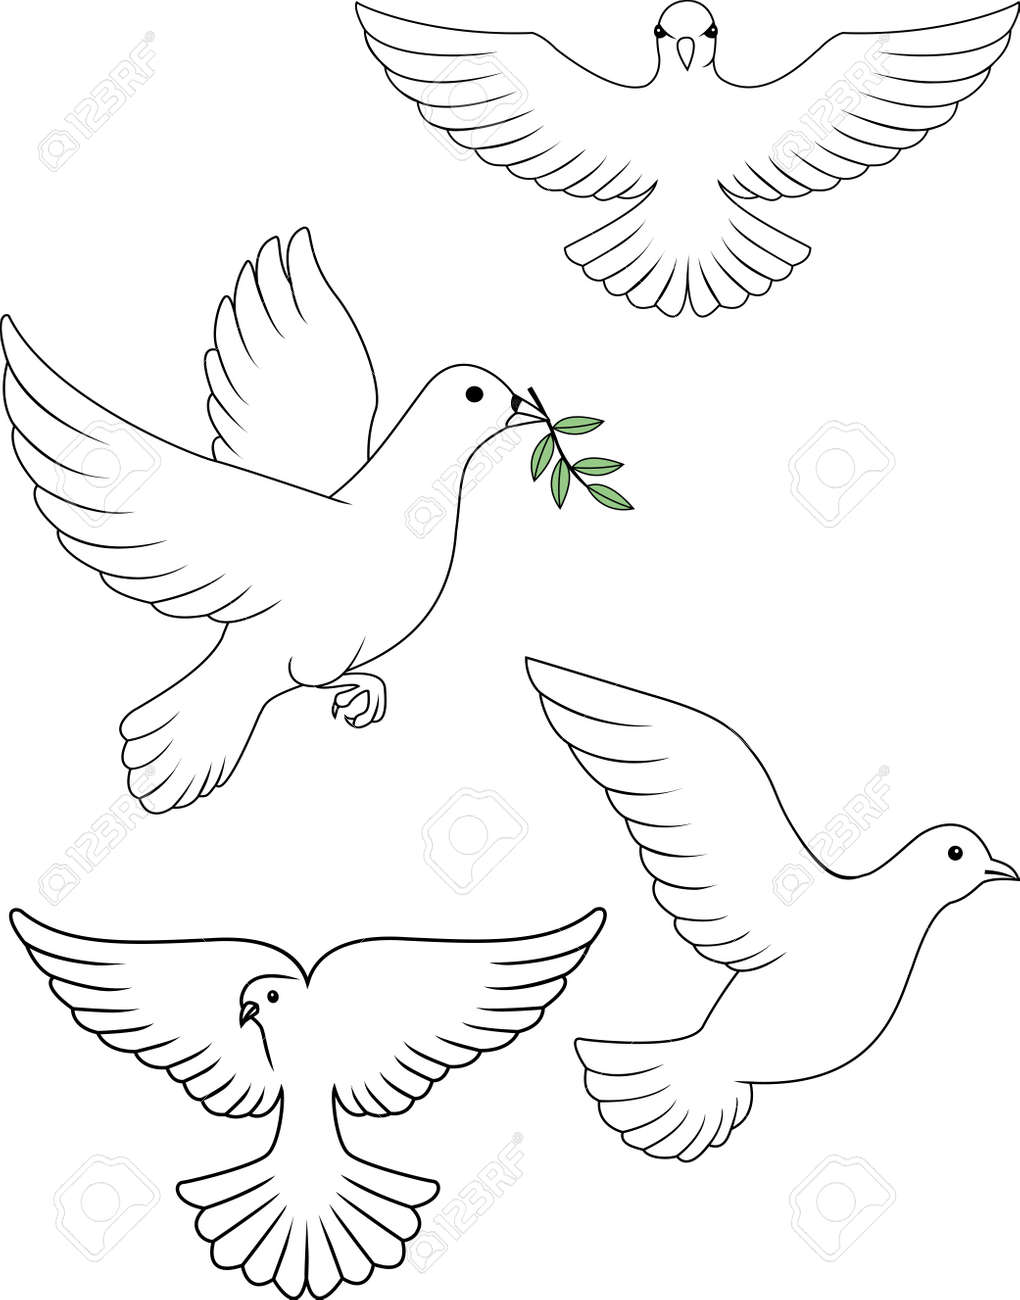 dove vector royalty free cliparts vectors and stock illustration rh 123rf com dove vector freepik dove vector files